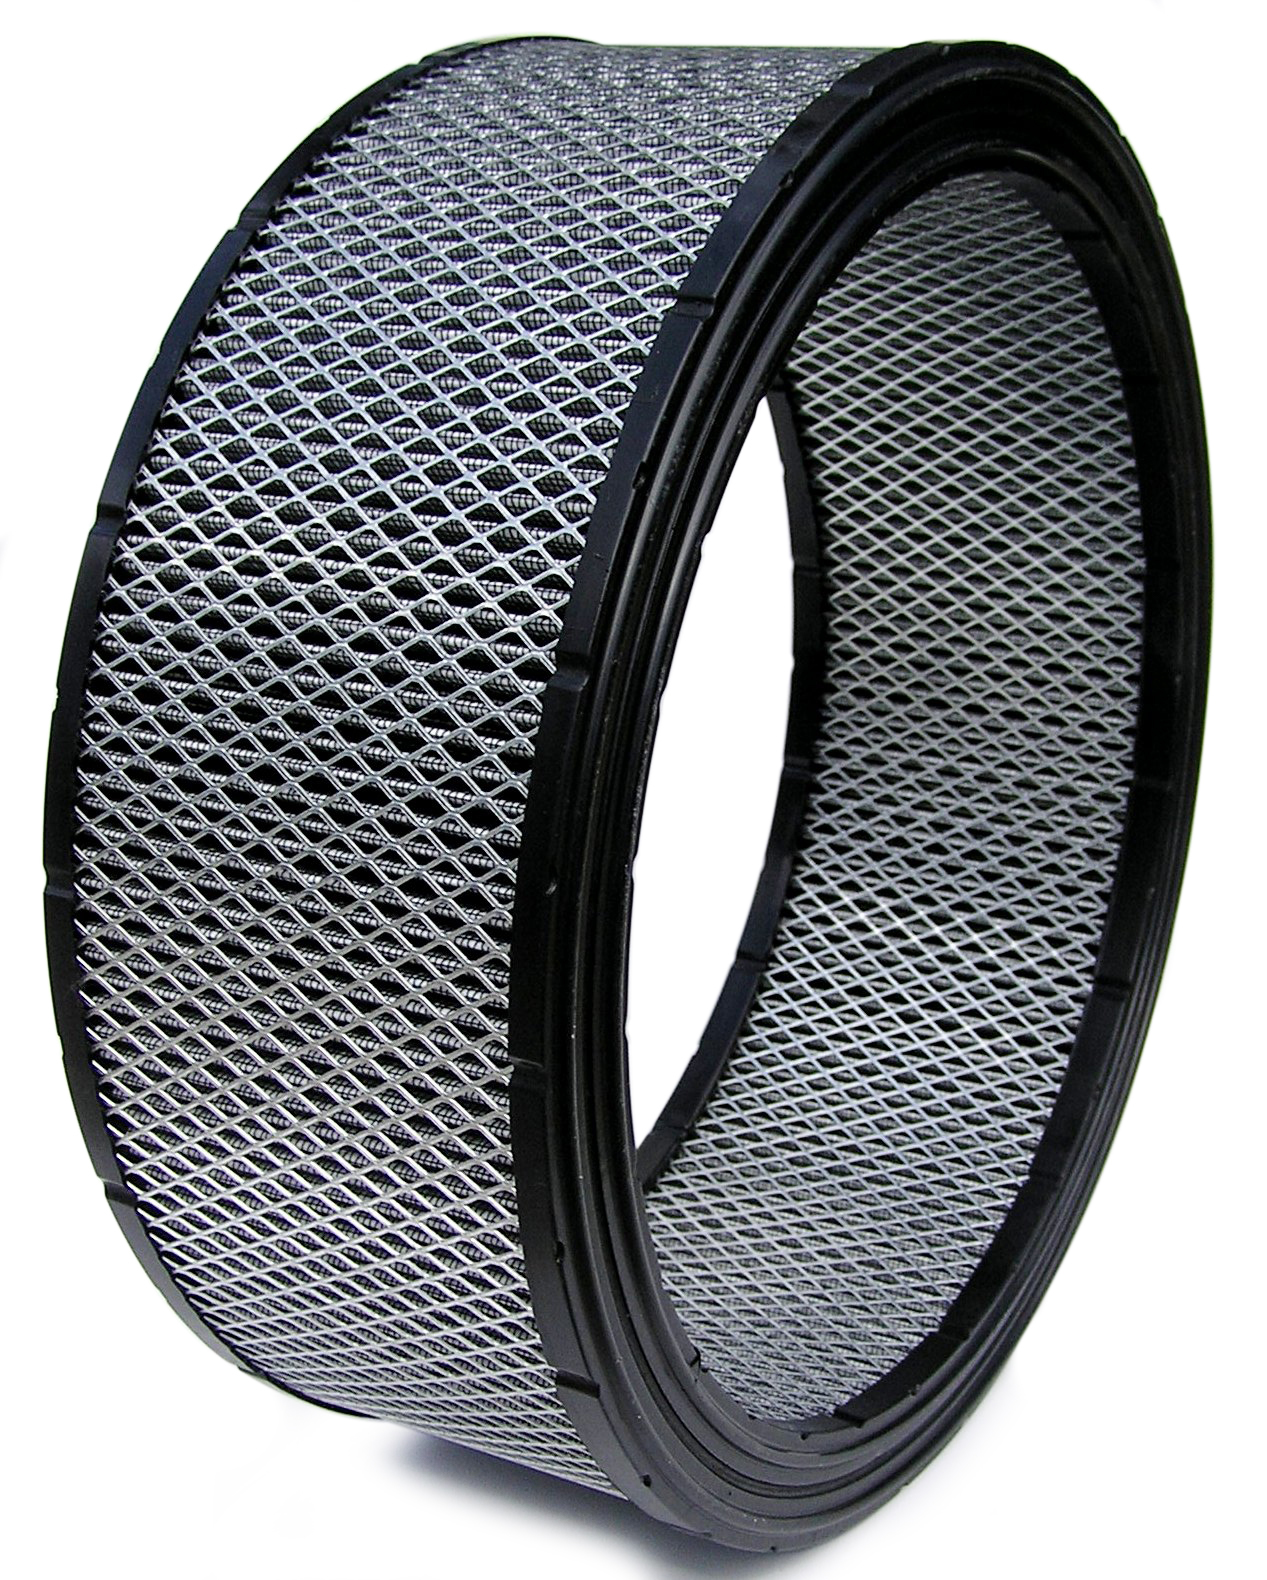 Air Filter 14in x 5in Drag / Asphalt